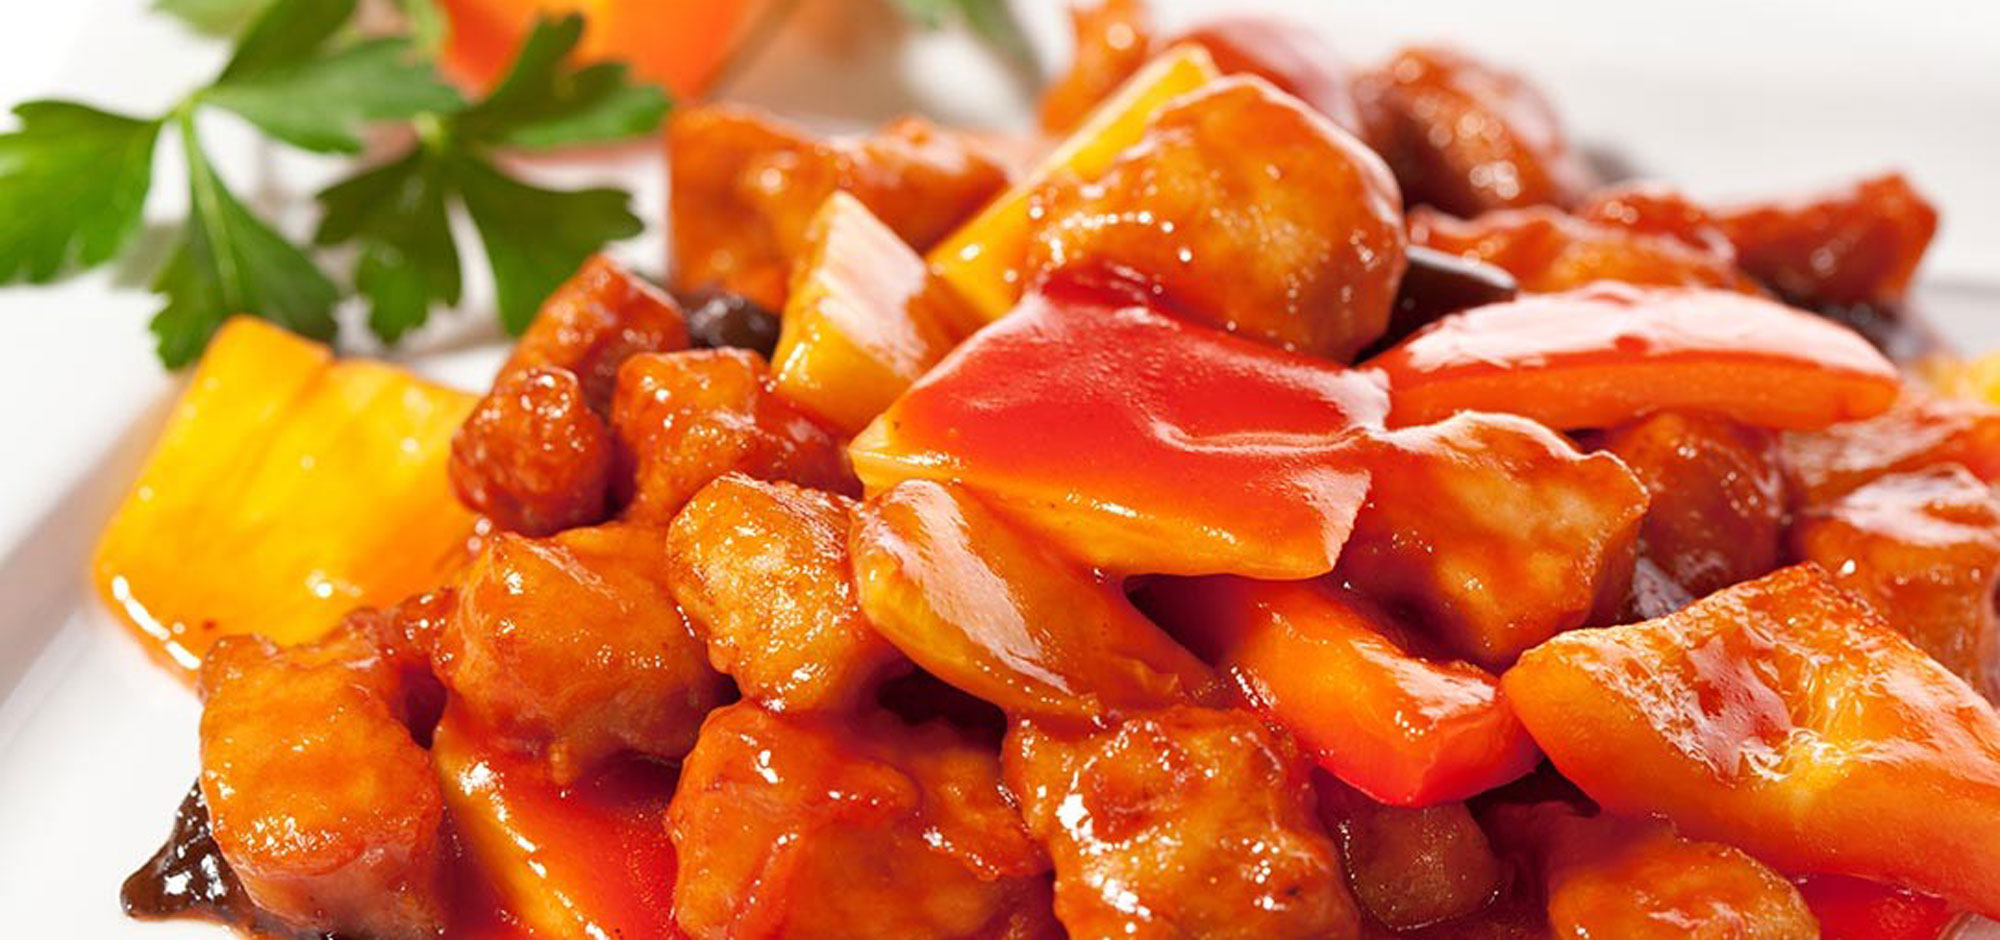 Sweet & Sour dish